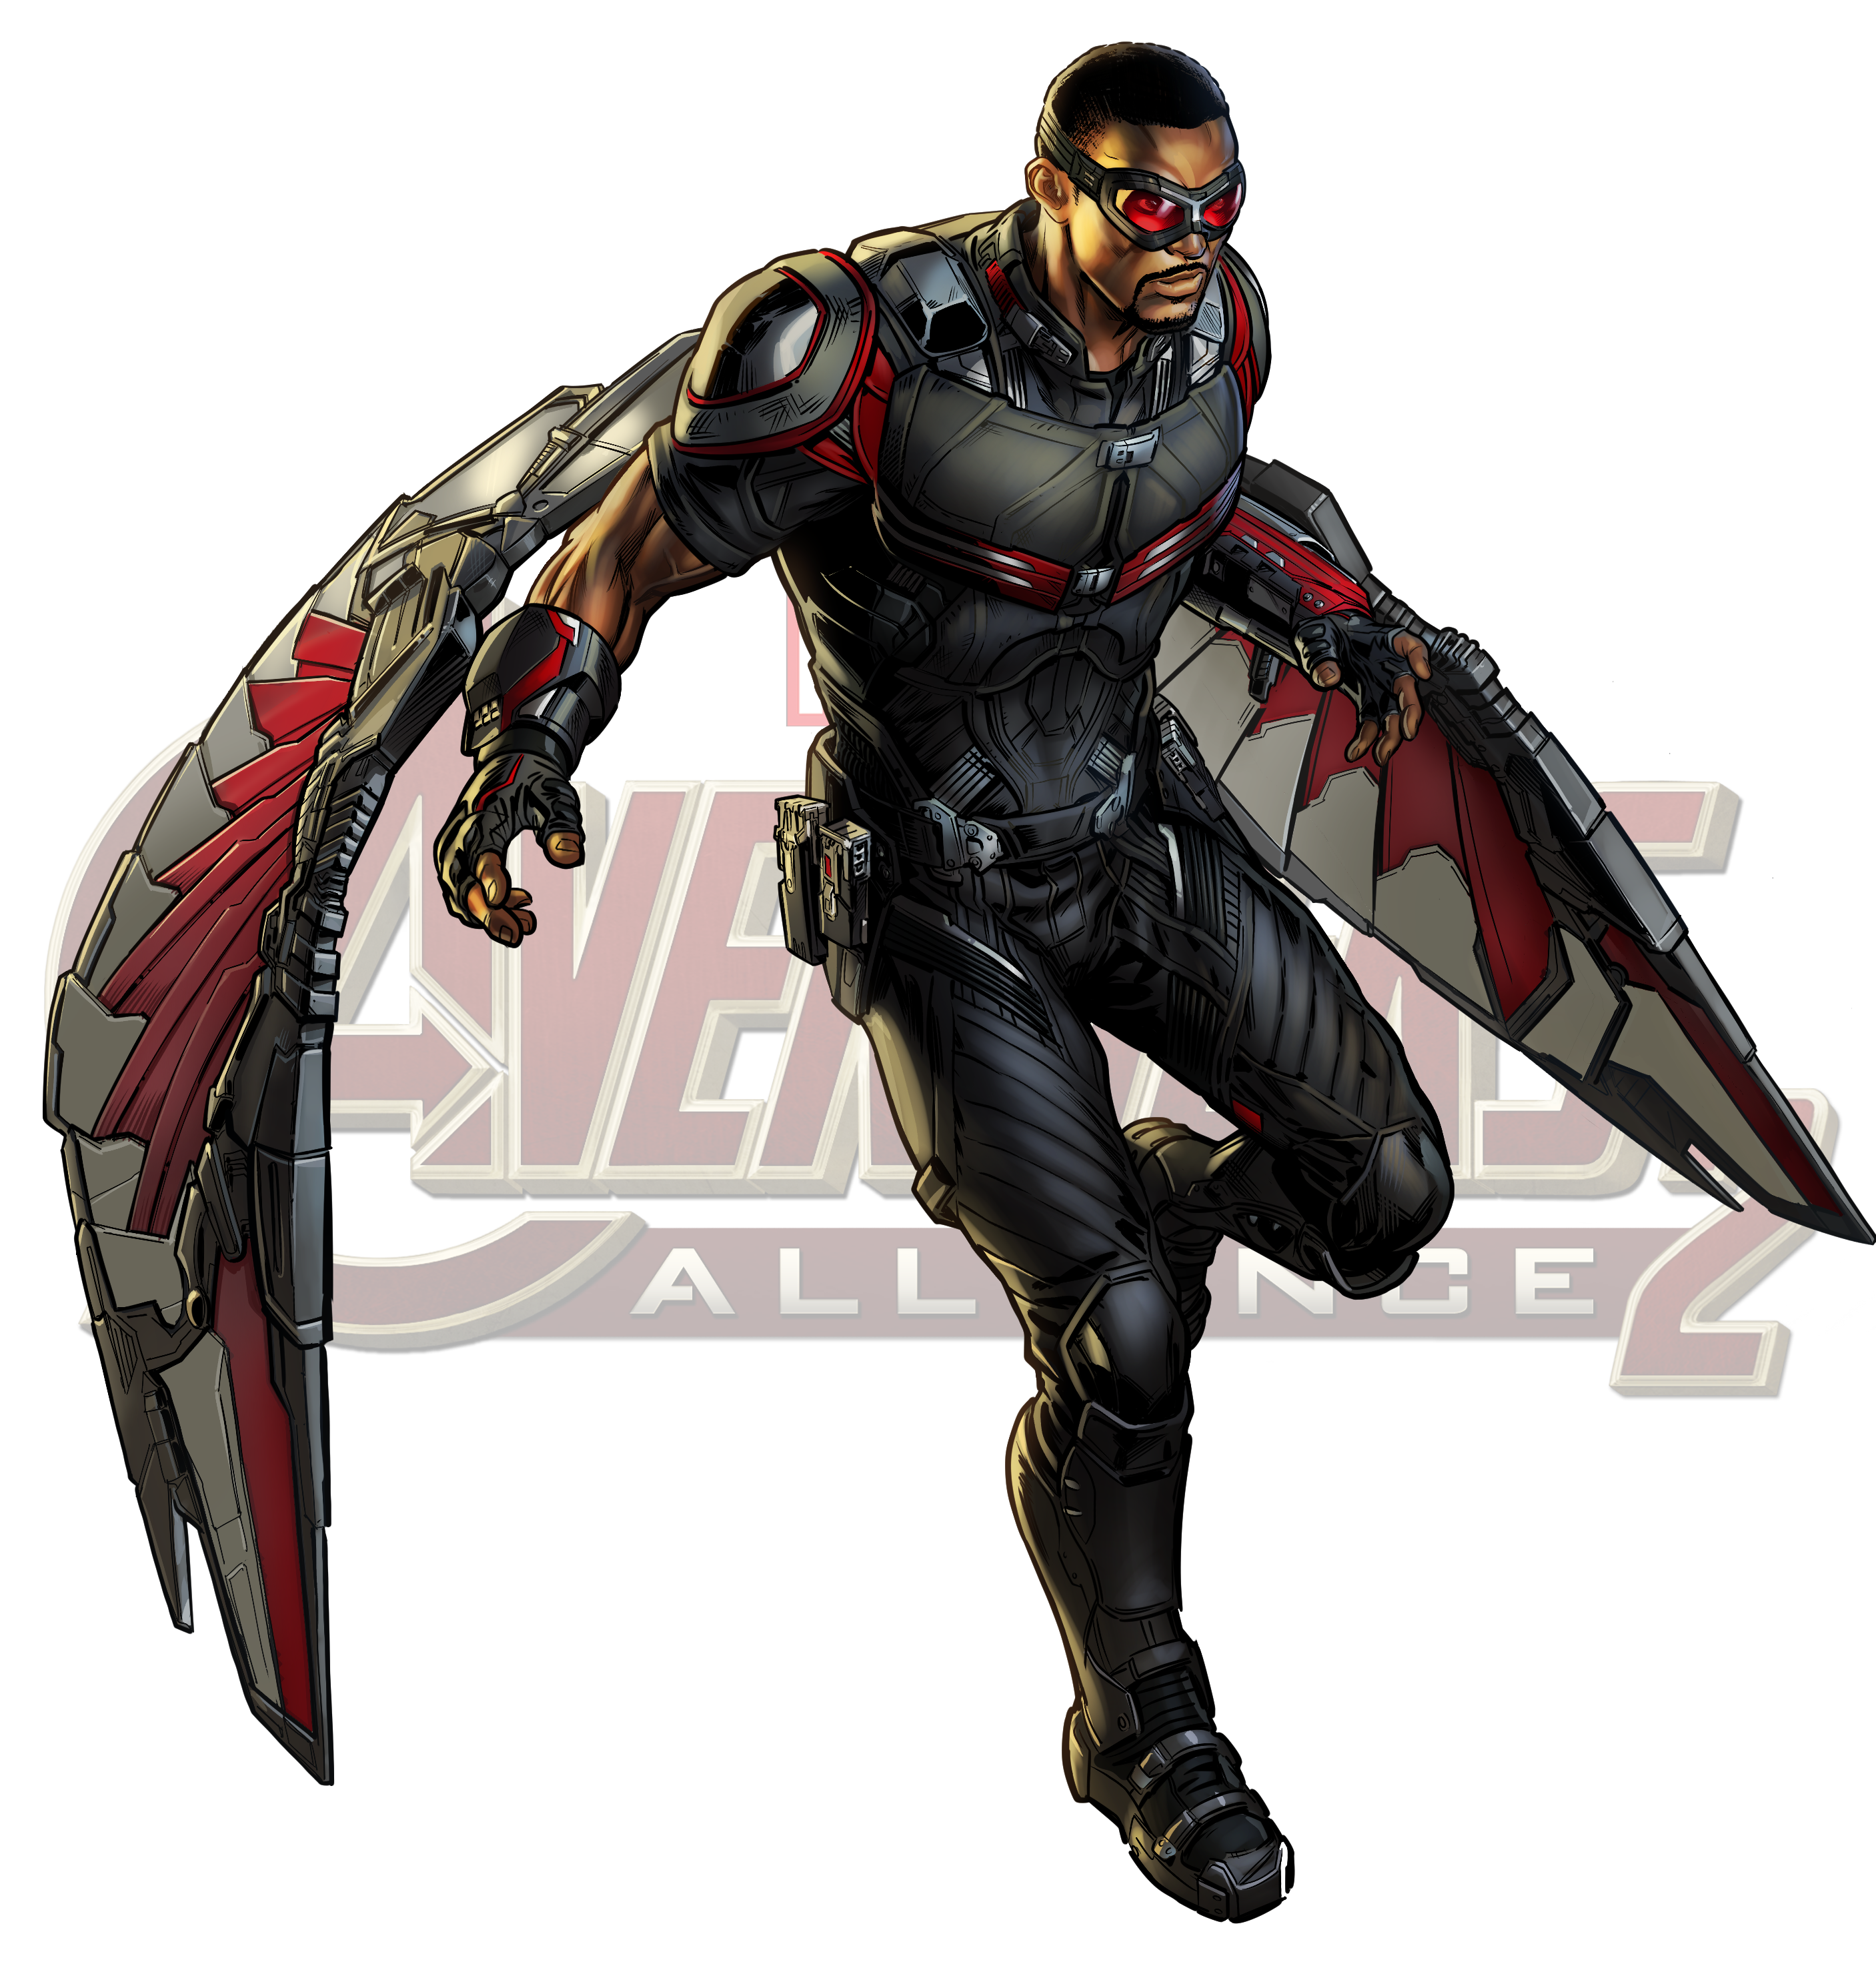 Falcon marvel png. Captain america cinematic universe